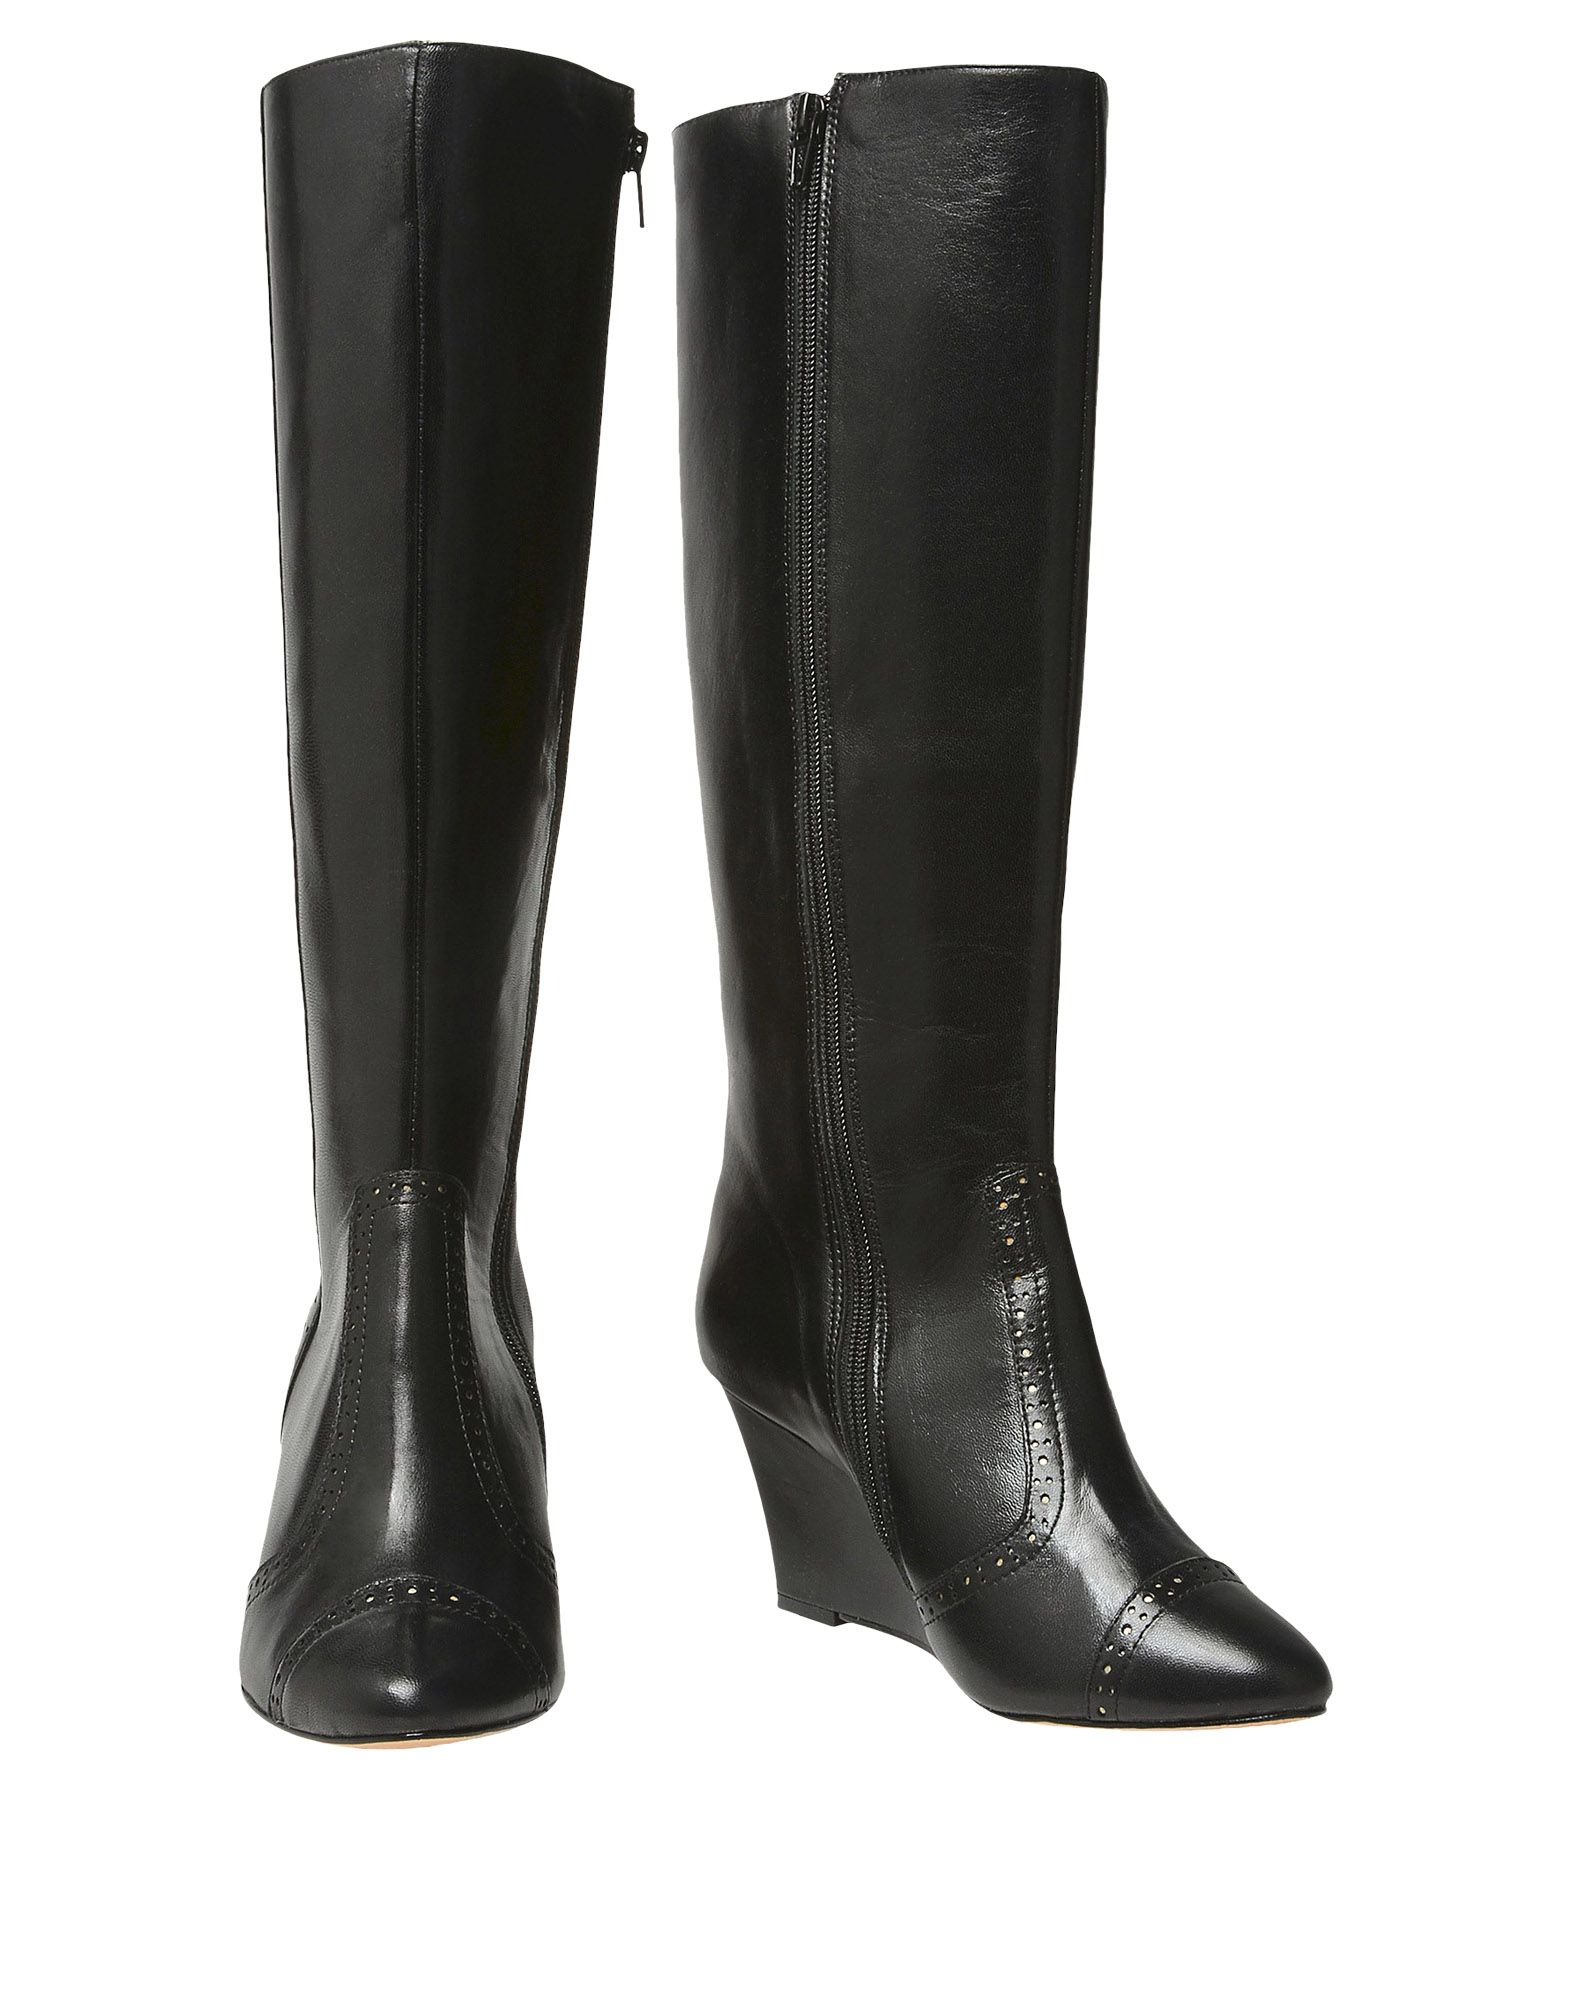 LUCY CHOI LONDON Boots in Black